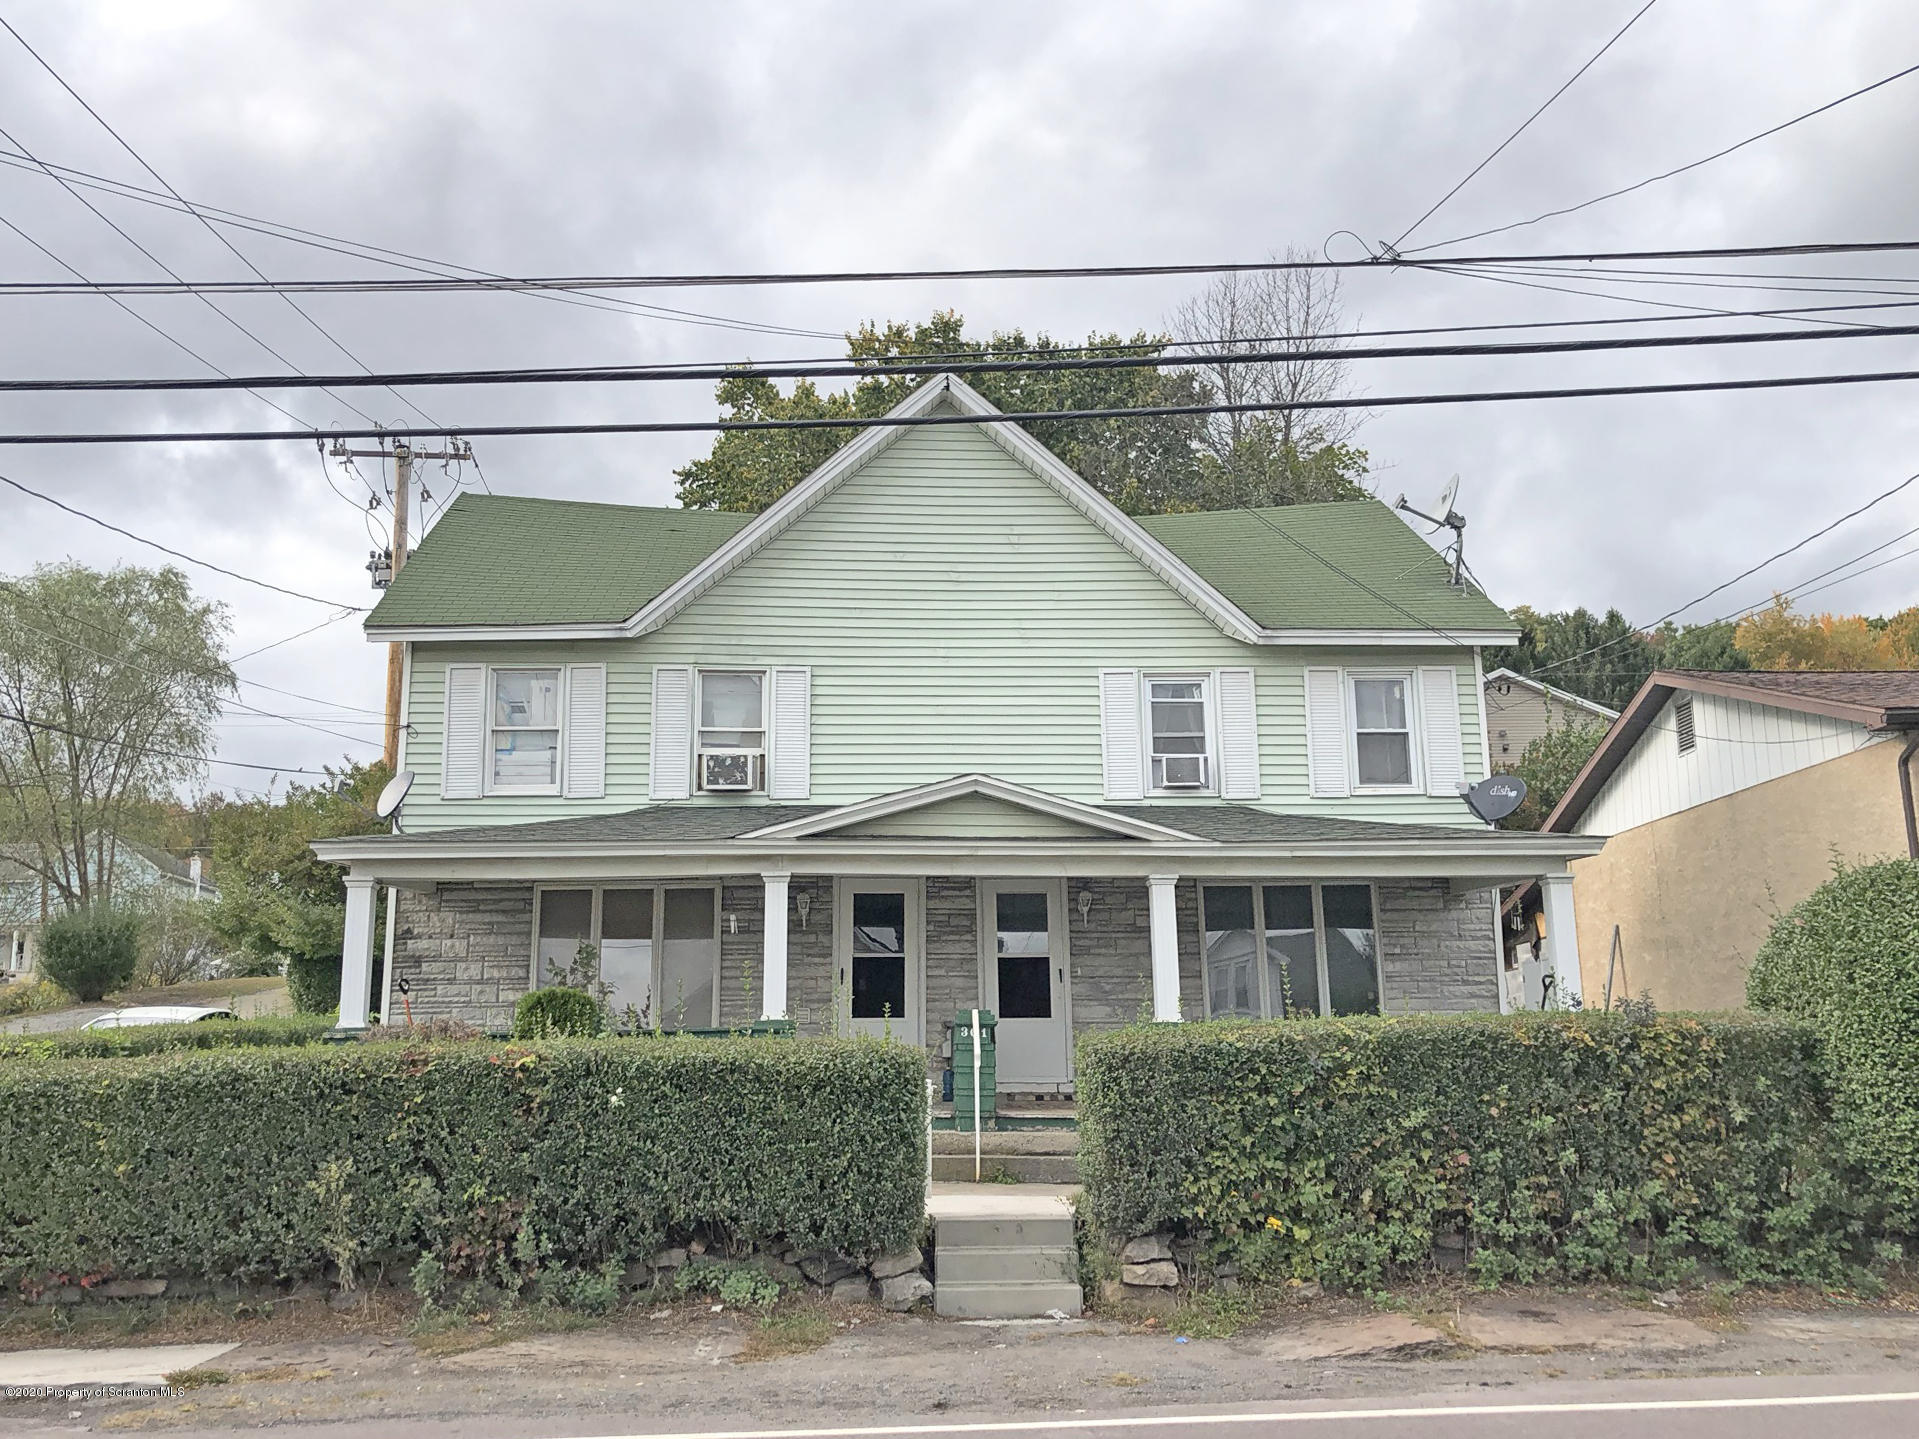 301-303 Depew Ave, Mayfield, Pennsylvania 18433, ,Multi-Family,For Sale,Depew,20-4117